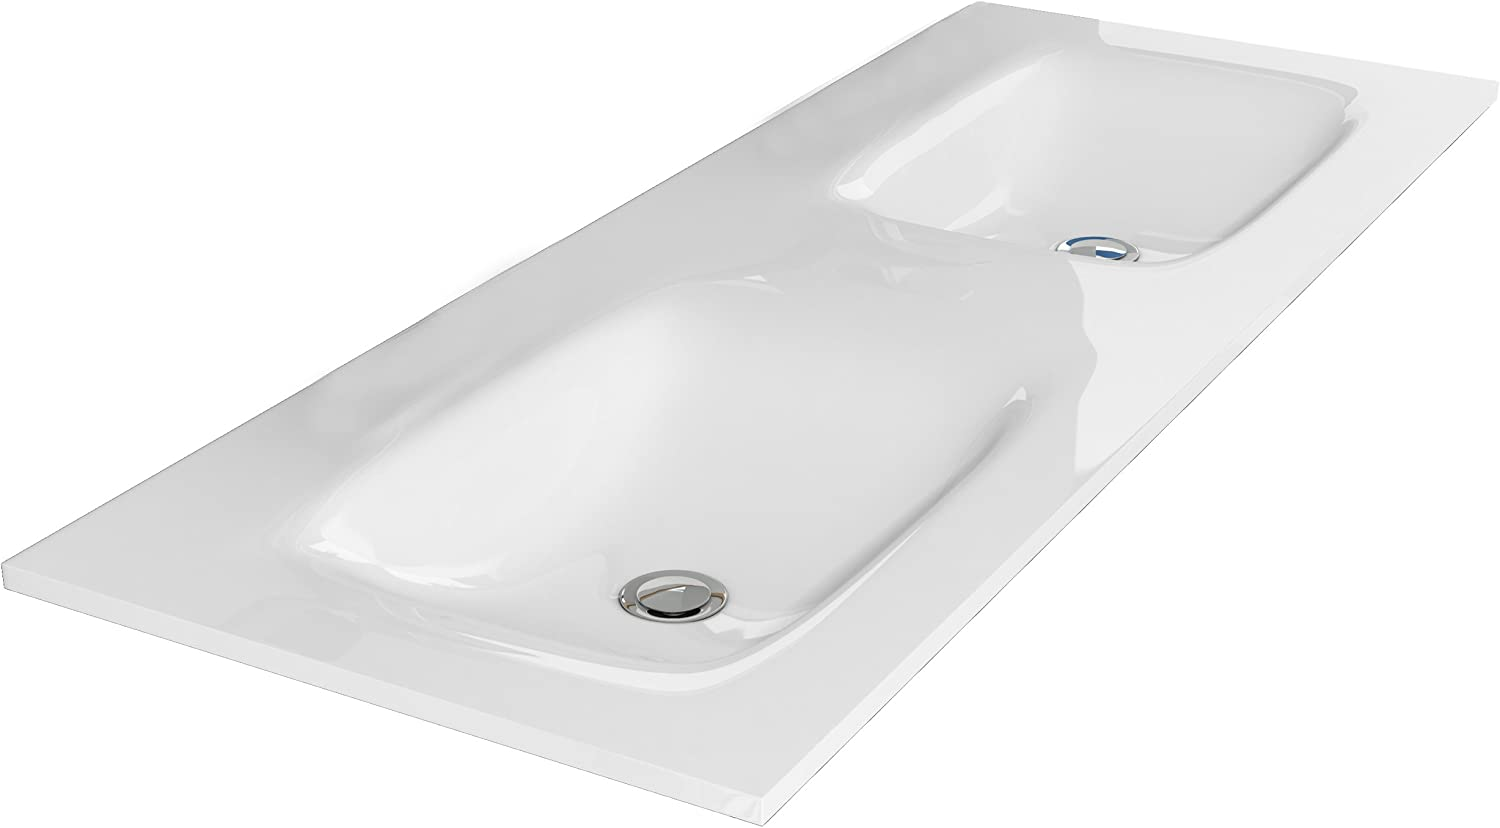 Art & Bath fenix121?–?2?Basin, 121?x 46?cm